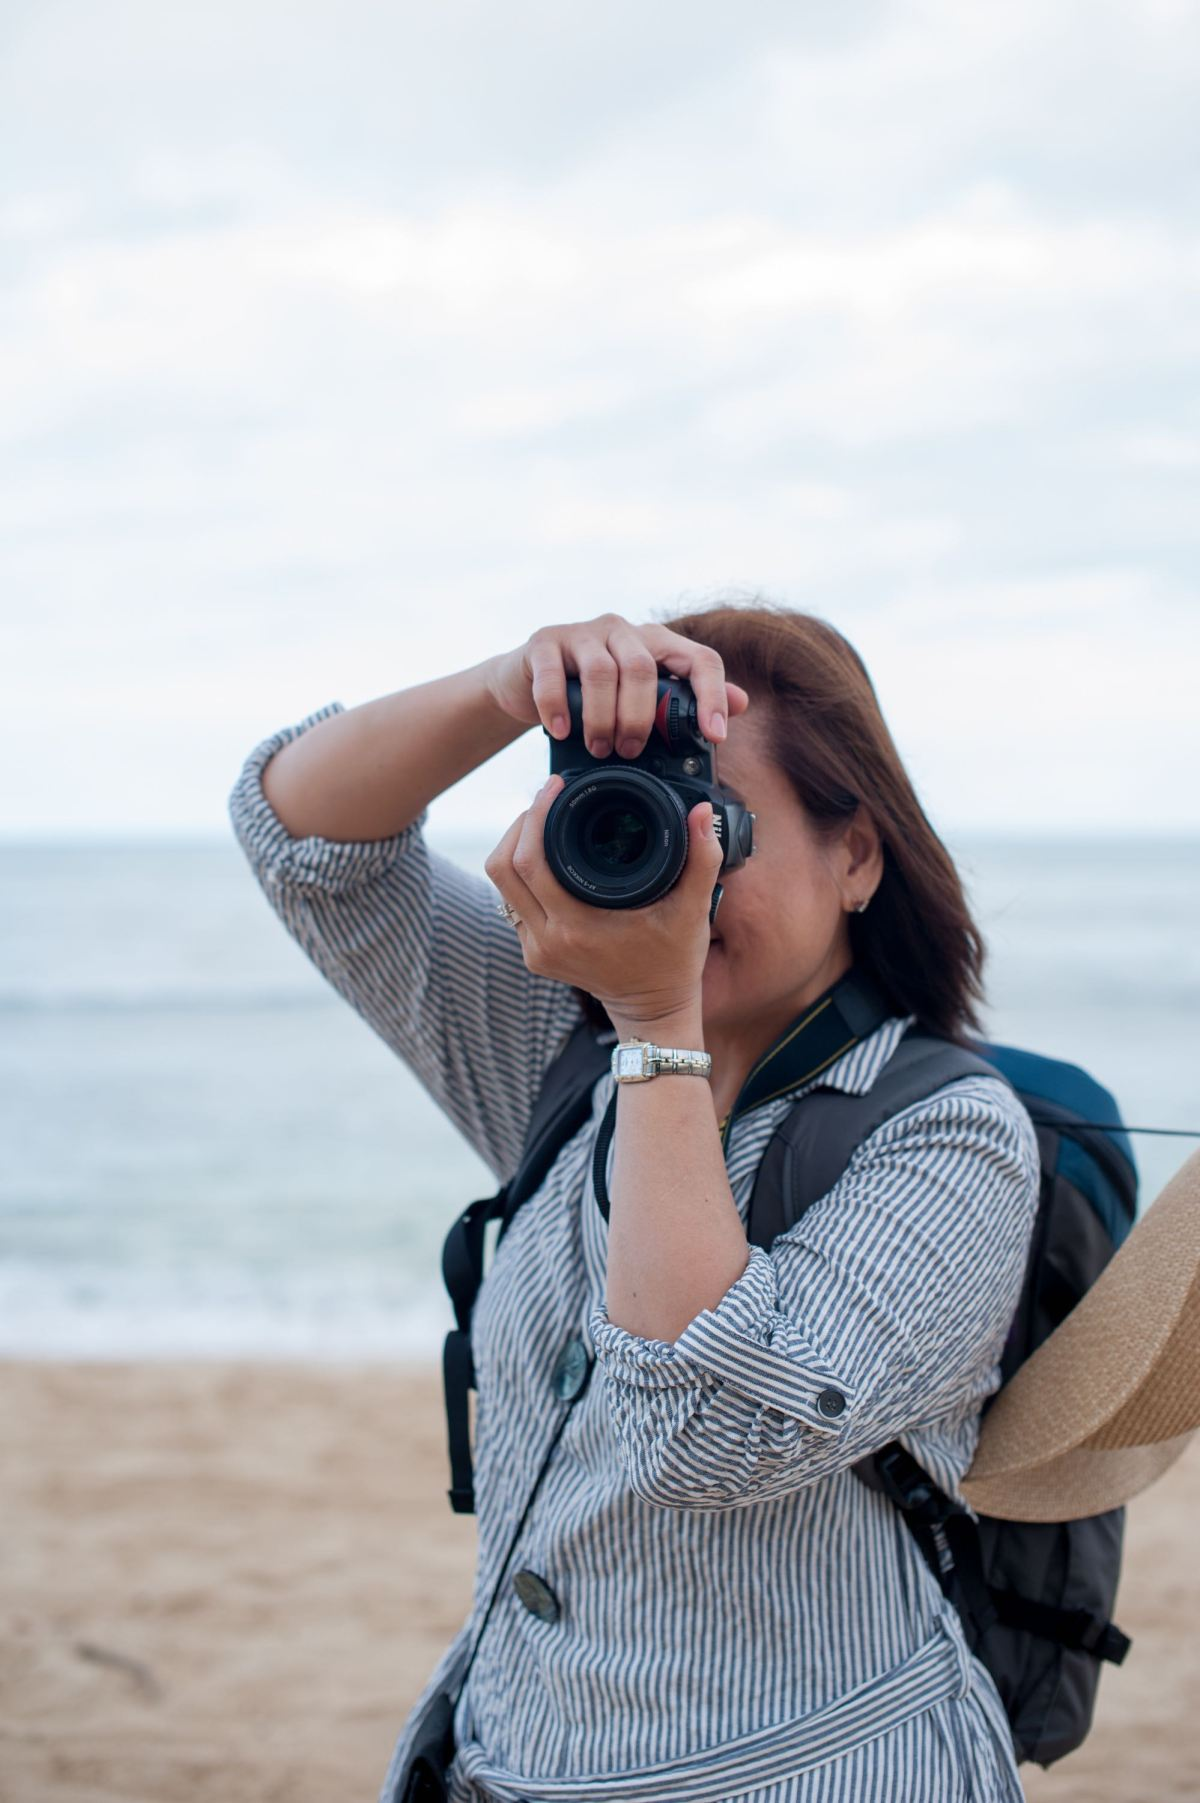 10 days in Waikiki (Day 2): Expert Photographing Tips in Waikiki